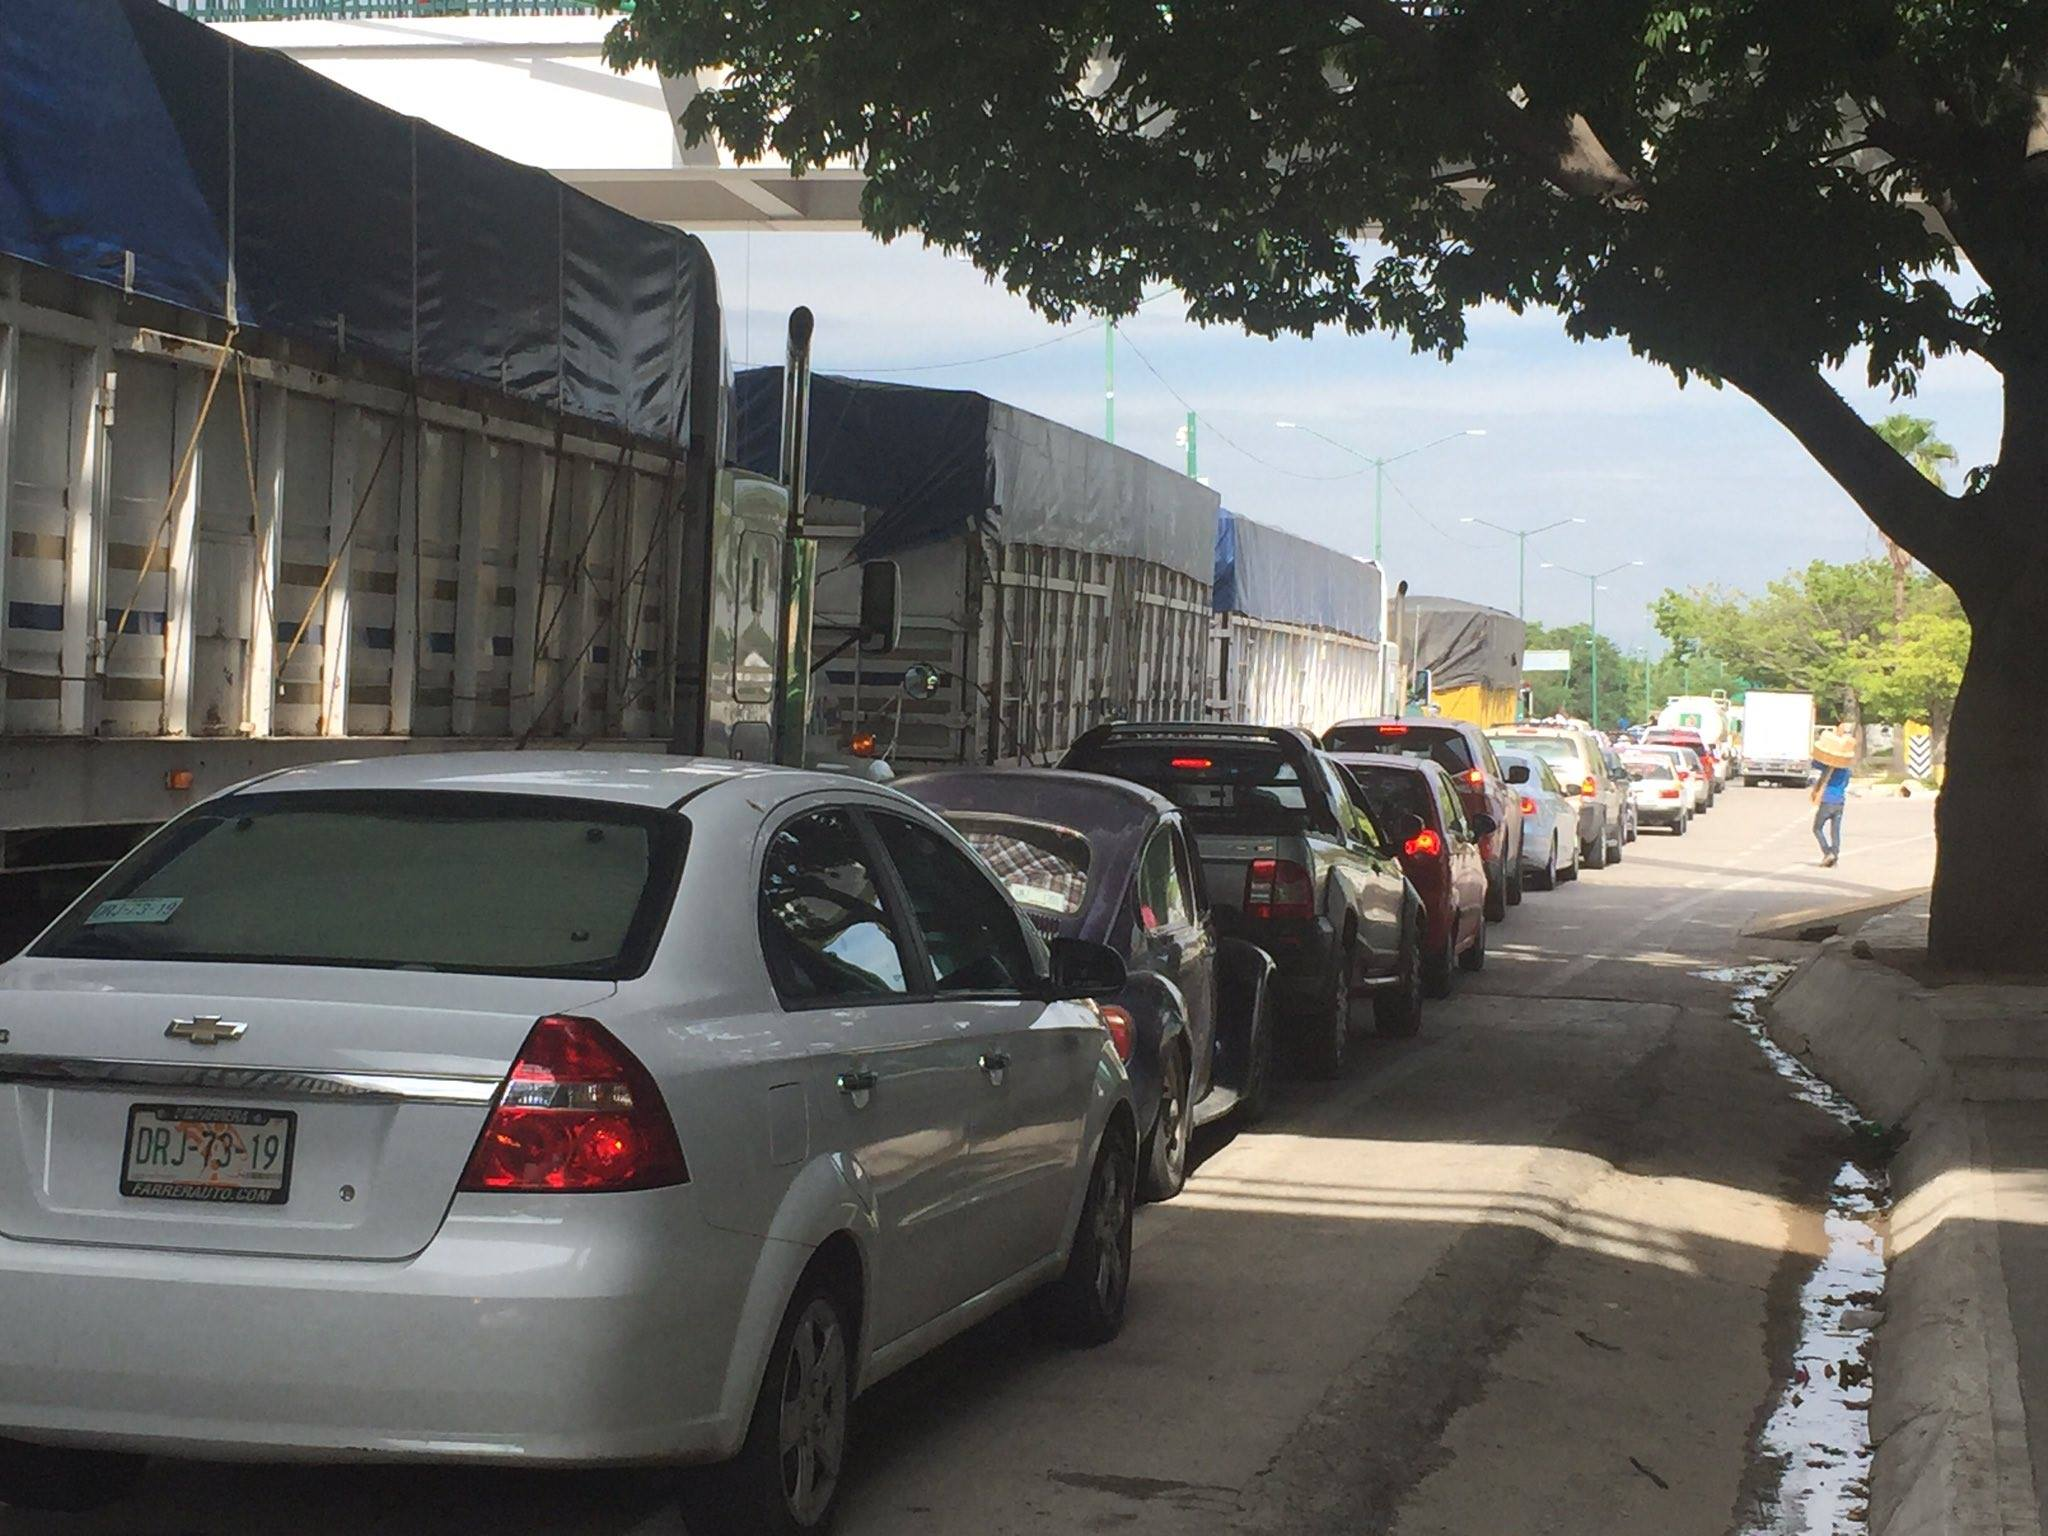 Daily life in Tuxtla